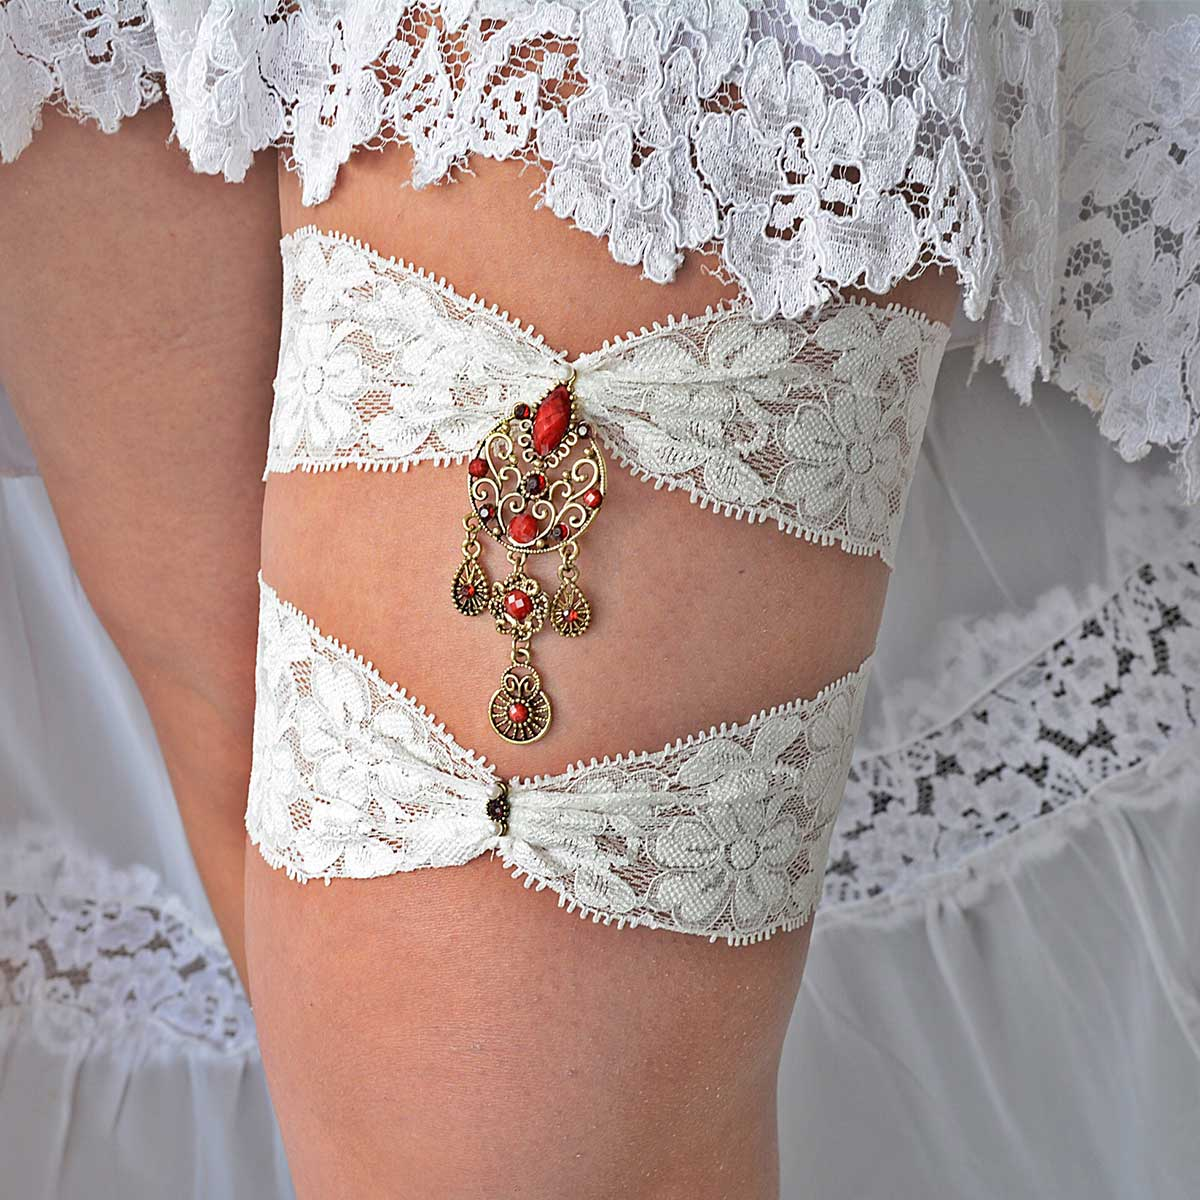 Antique Gold & Red Rhinestone Bridal Garter With Ivory Lace